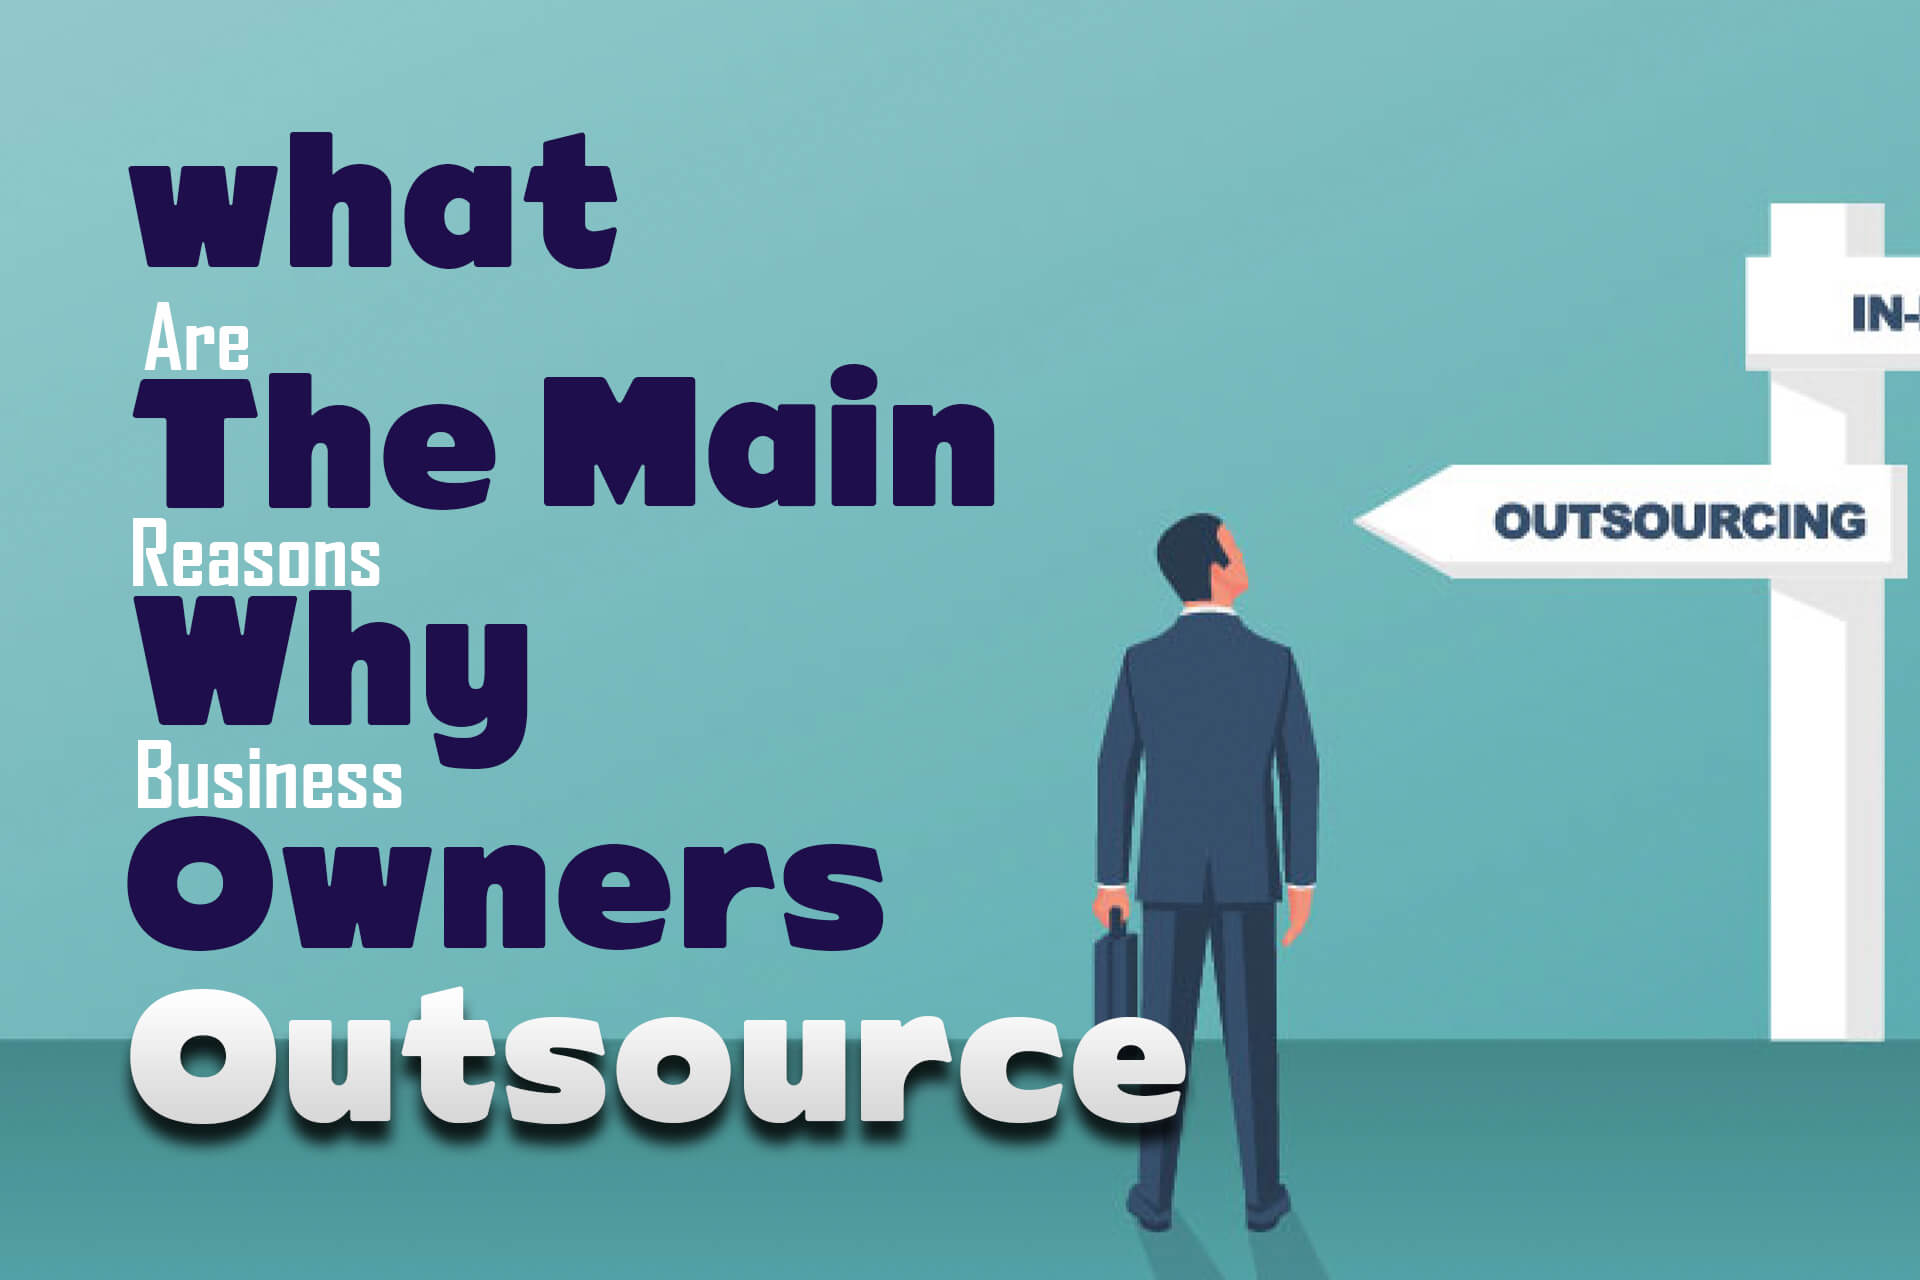 What Are The Main Reasons Why Business Owners Outsource?